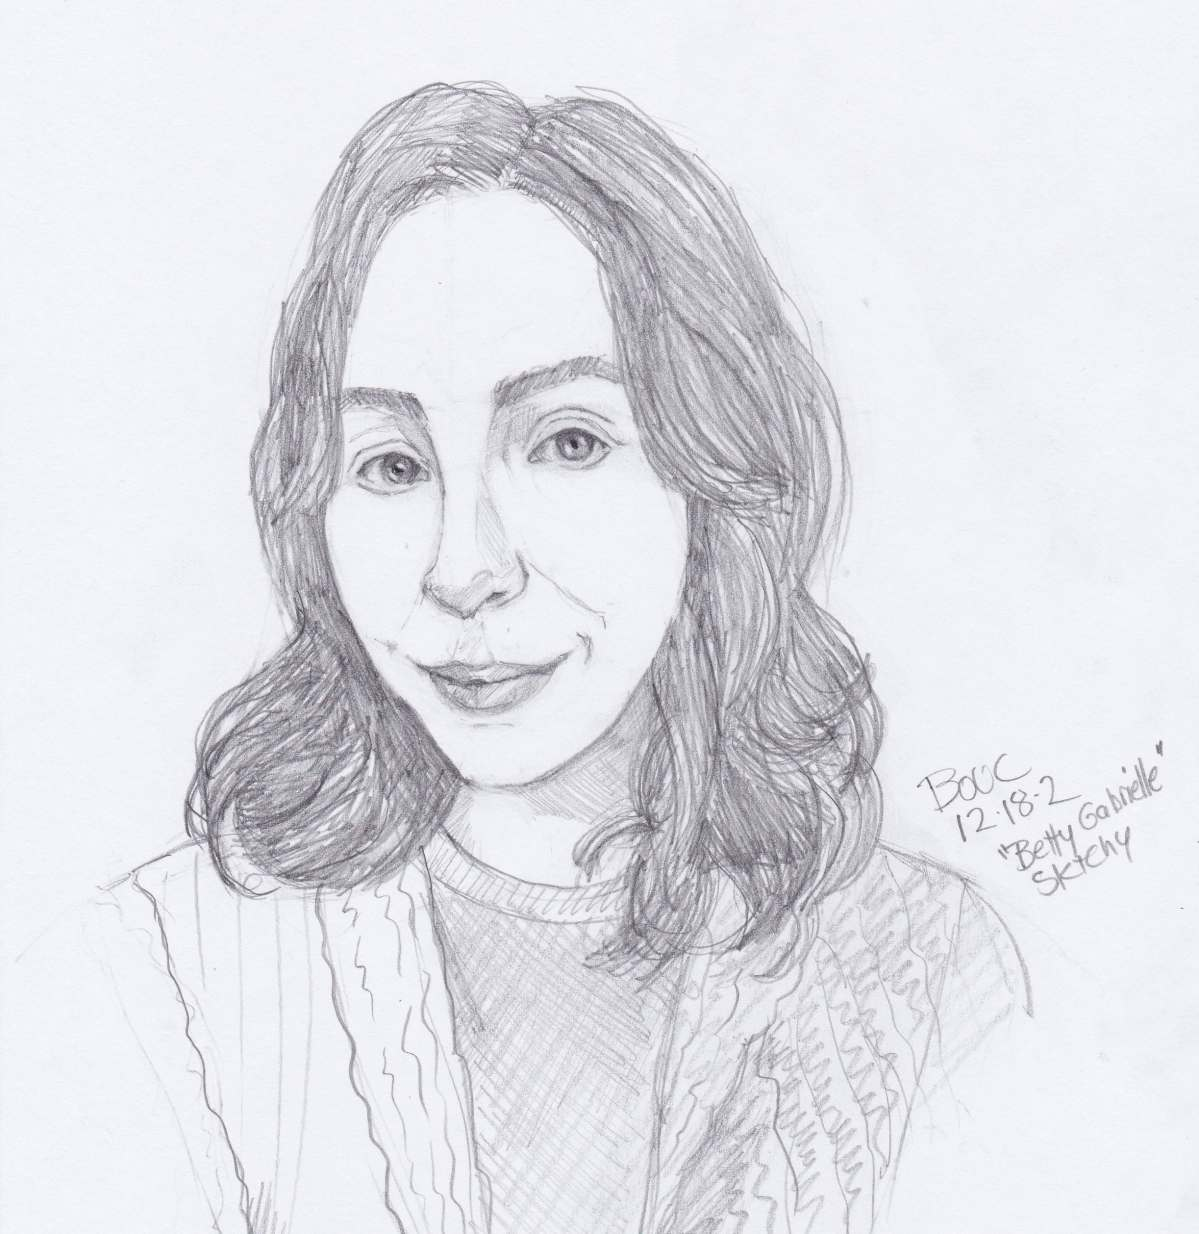 Quick Sketch of Bette G. from Sktchy, graphite